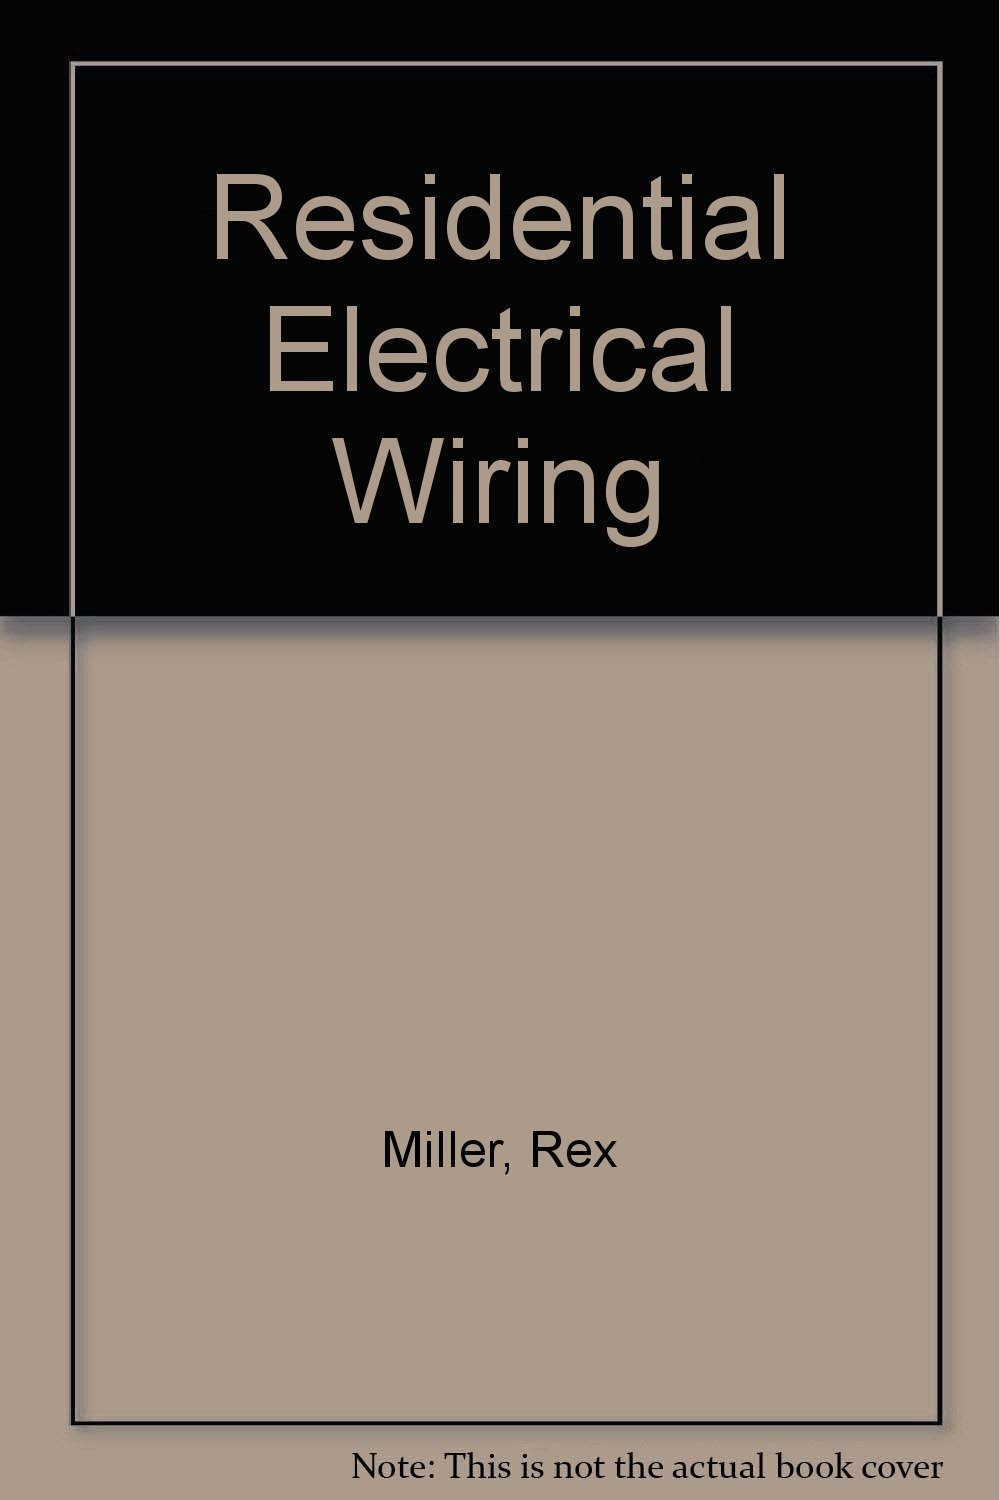 Residential Wiring Games Blog About Diagrams A House Codes Electrical Rex Miller 9780026656207 Amazon Com